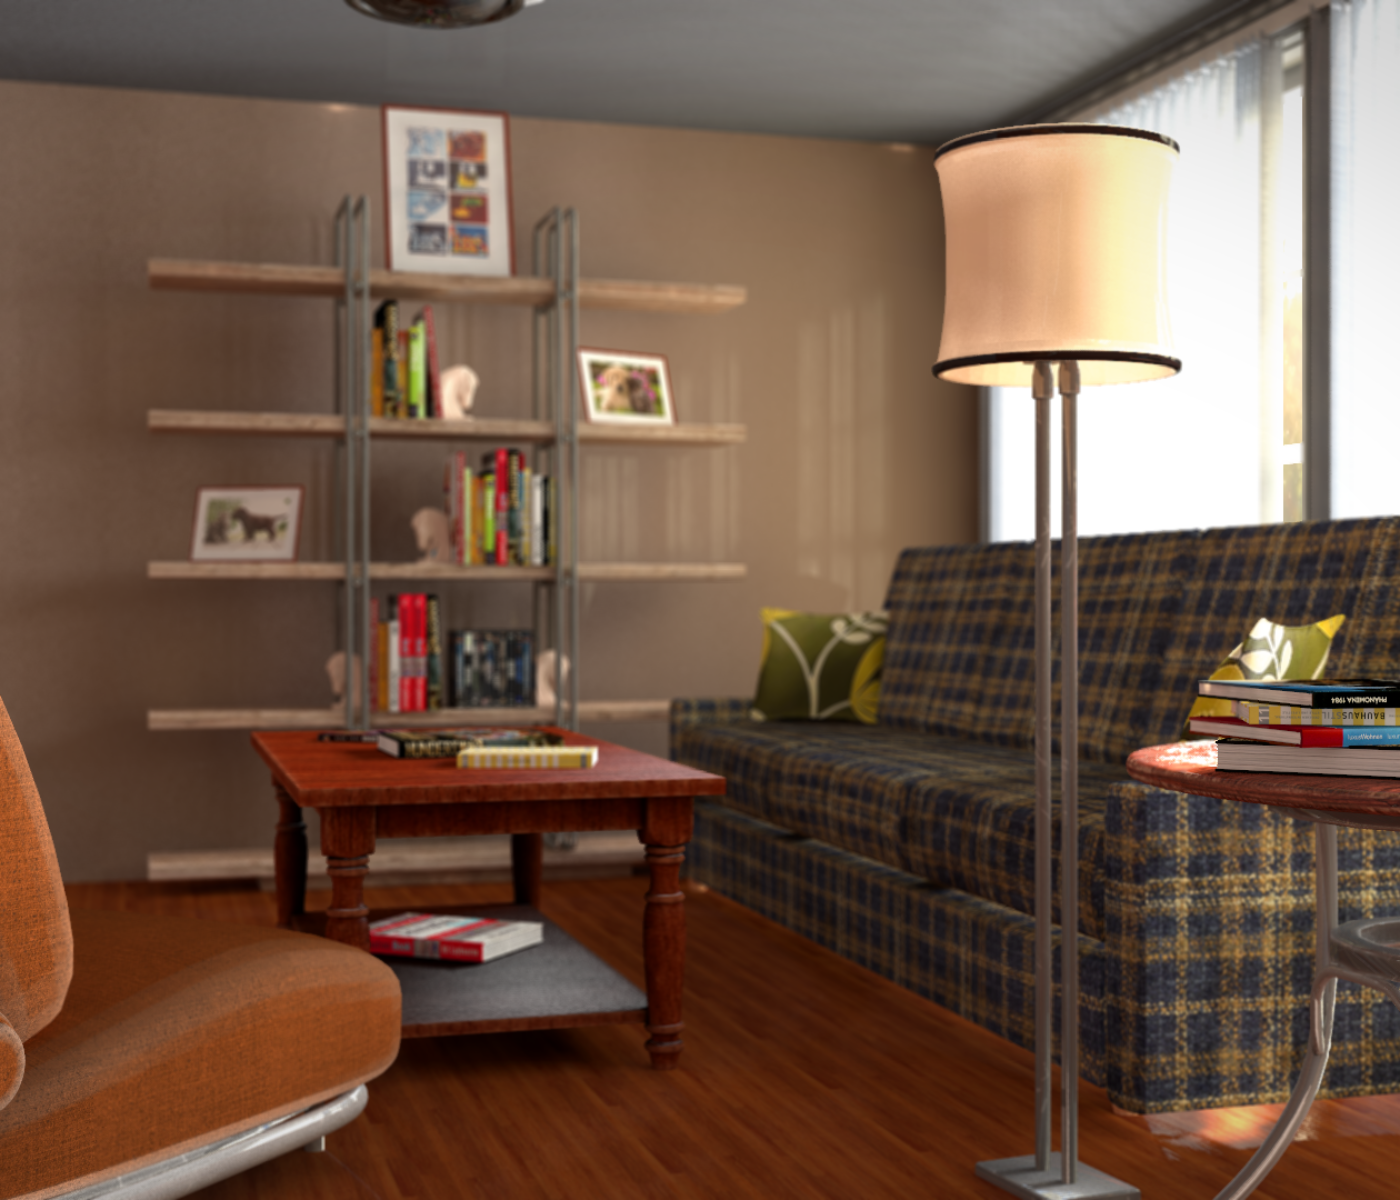 Archivis Living Room Render 2019